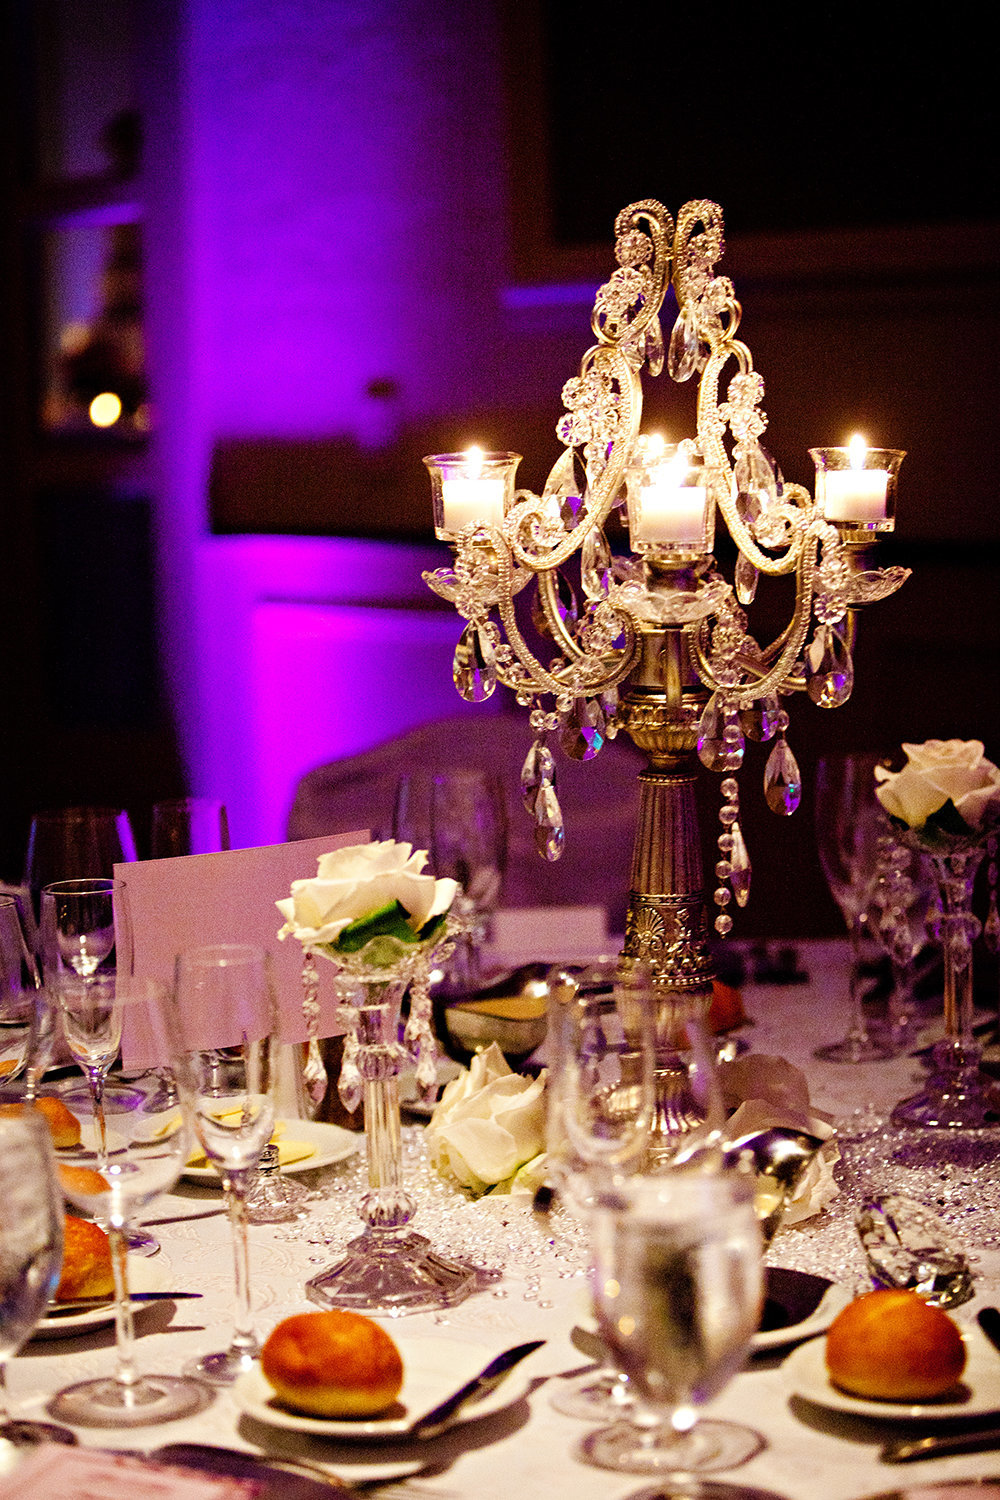 Beautiful chandelier table centerpieces with candles